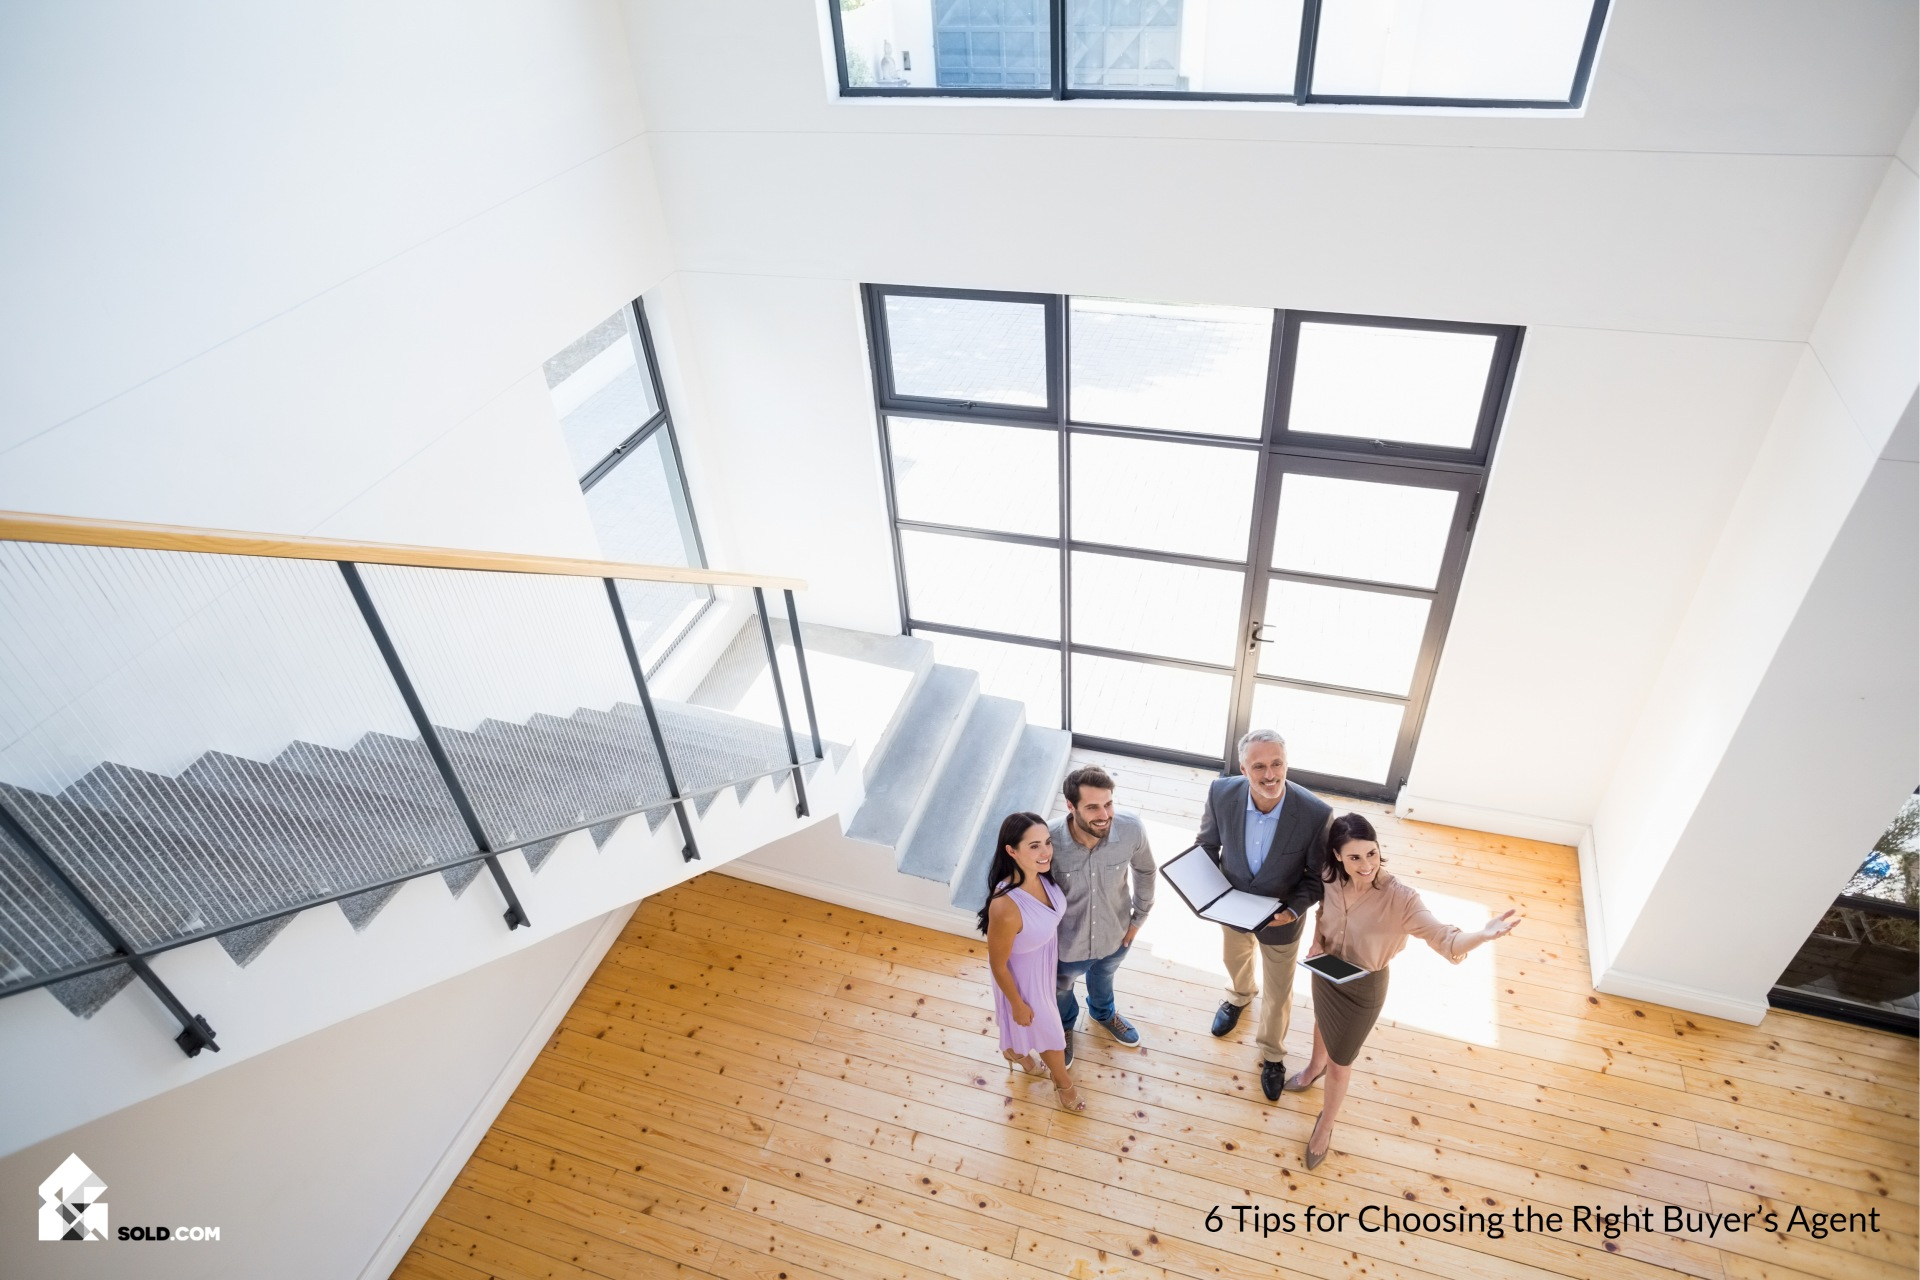 6 Tips for Choosing the Right Buyer's Agent